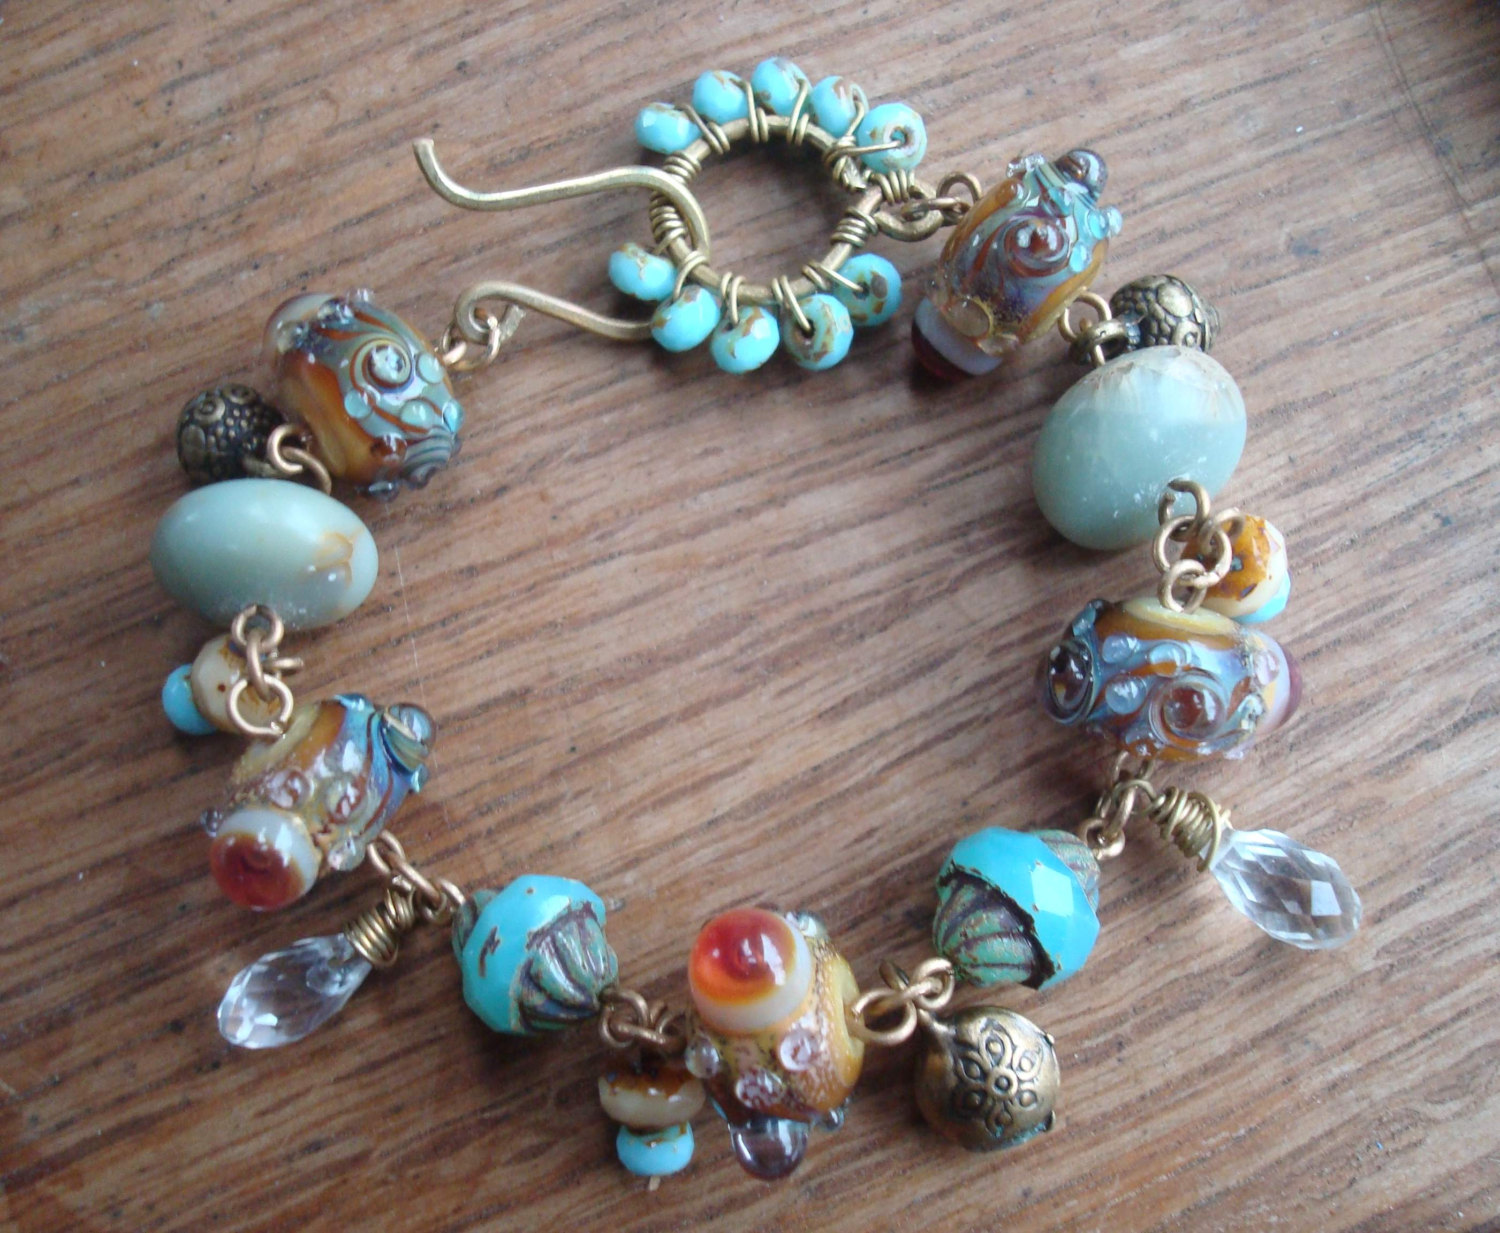 Beady Eyed Bunny: New beads and jewelry and a sale!